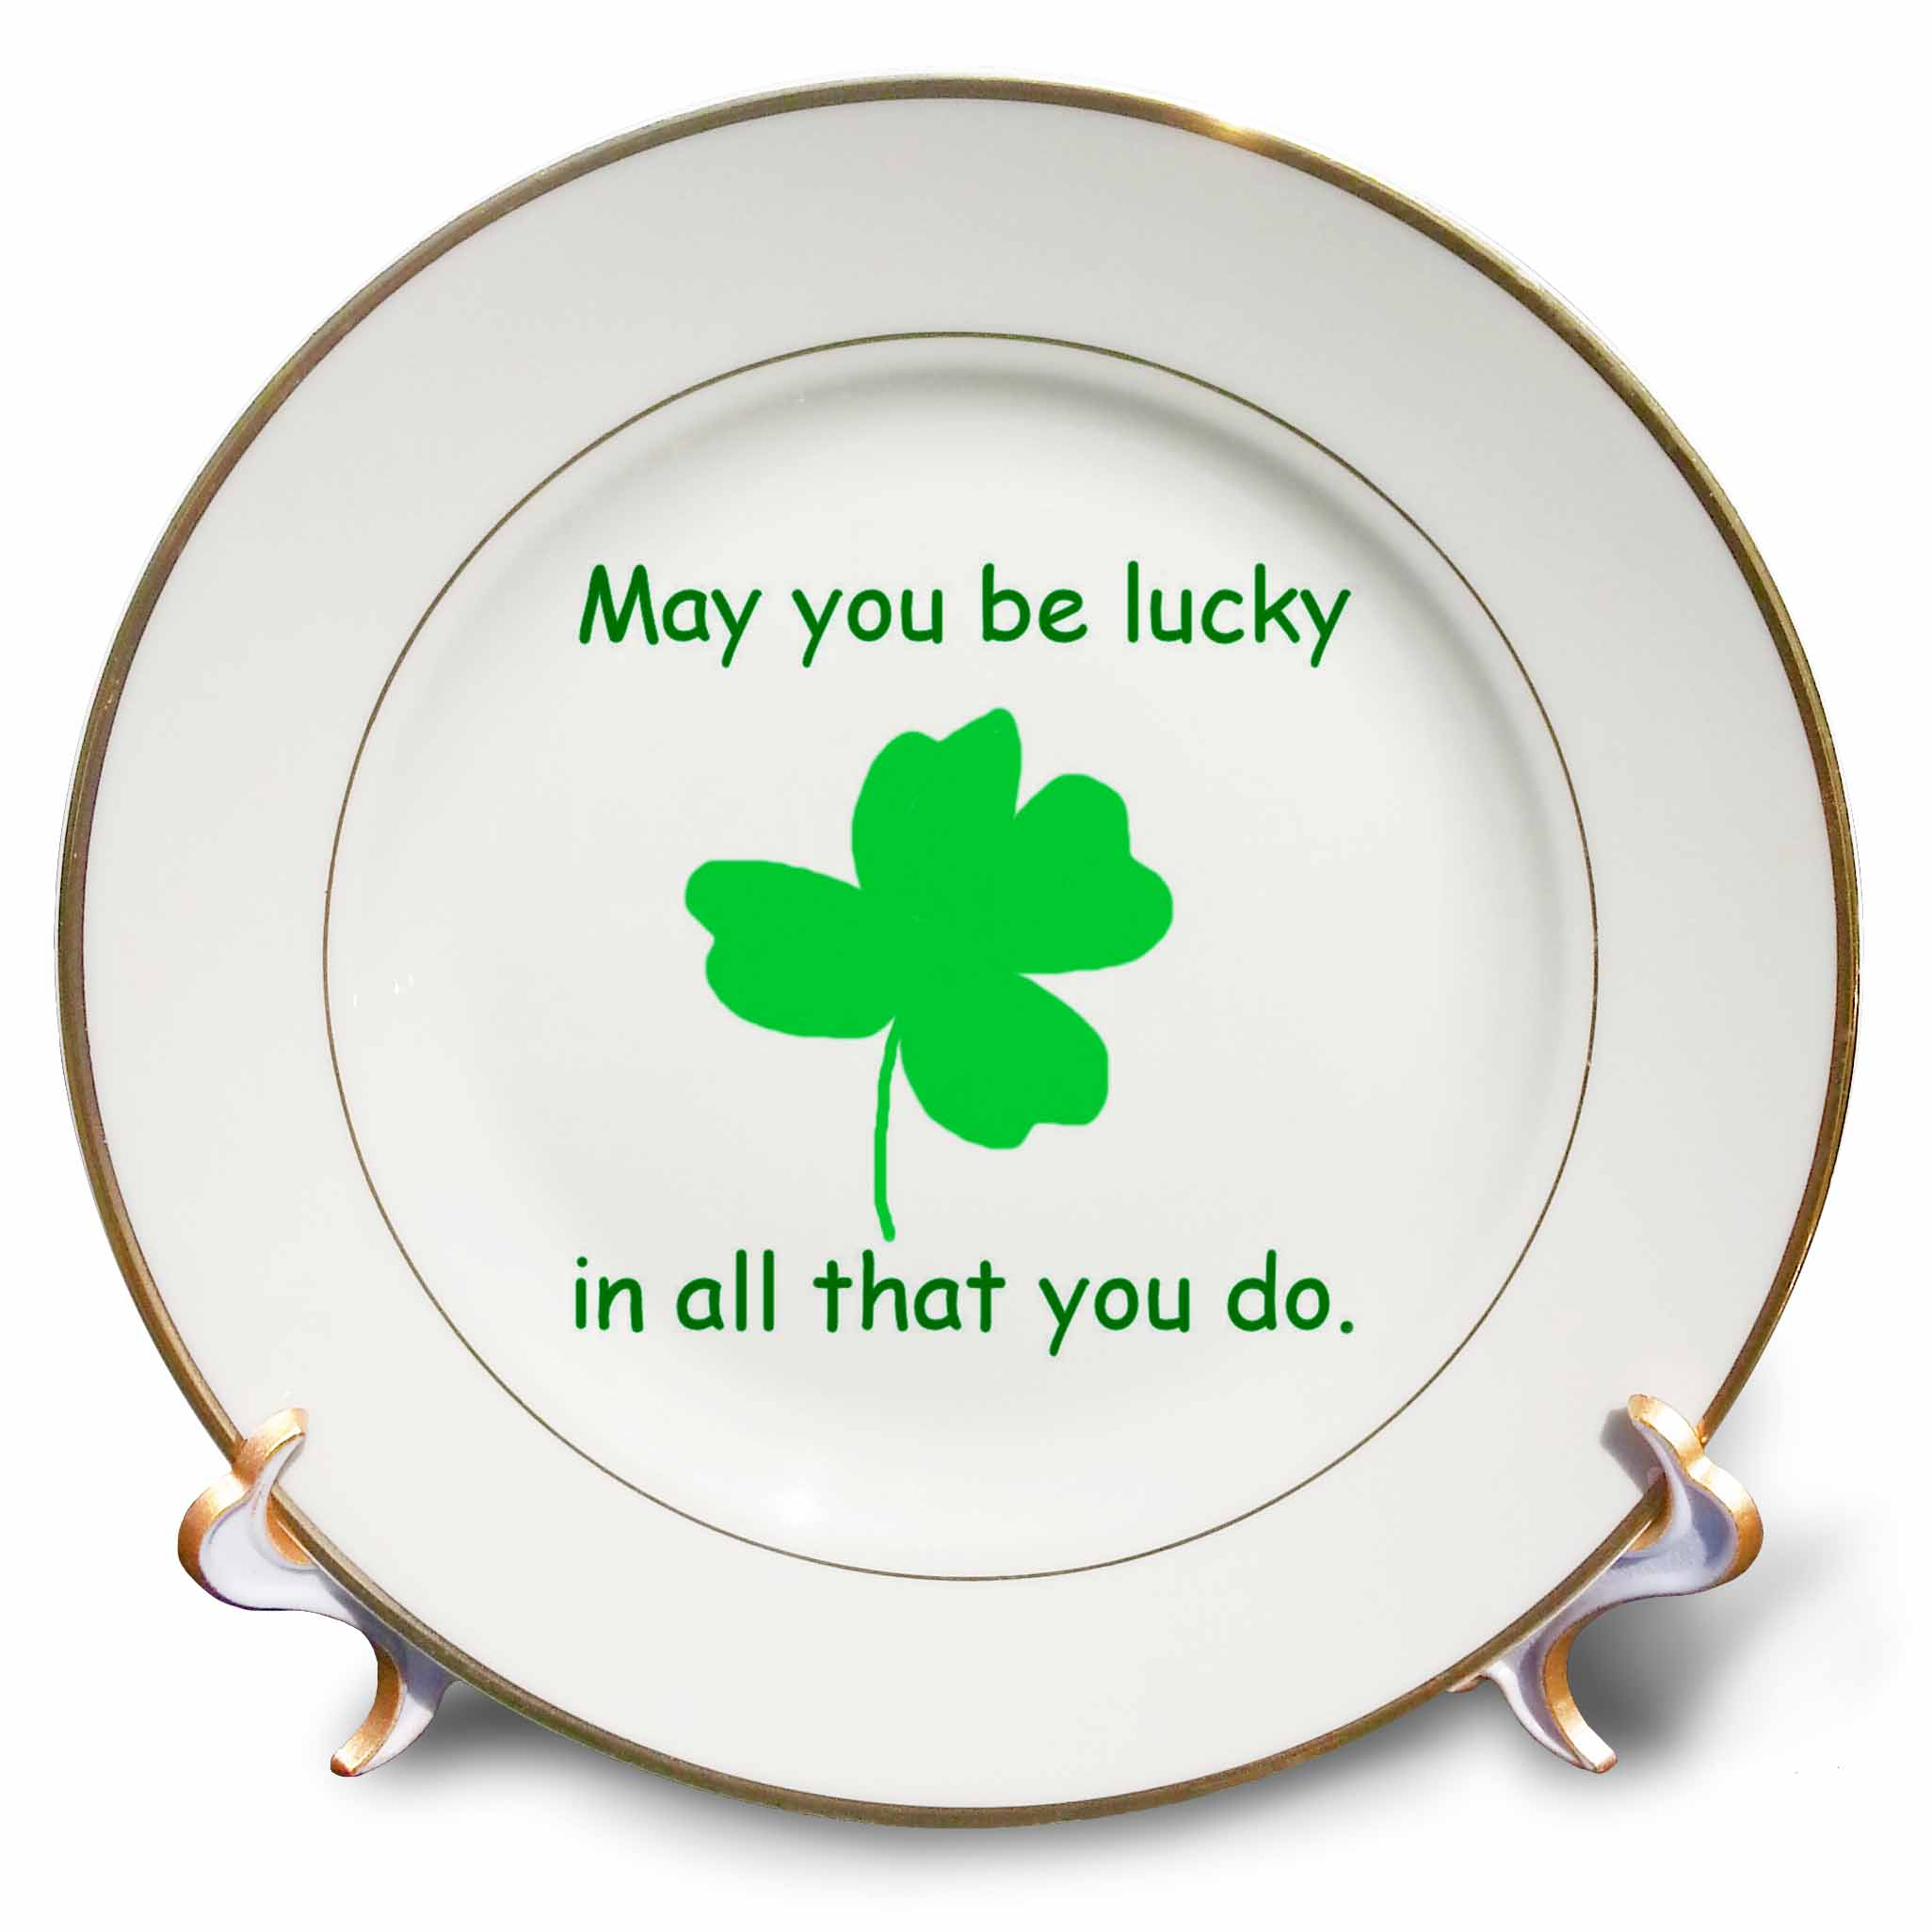 3dRose May you be lucky in all that you do Green Shamrock, Porcelain Plate, 8-inch